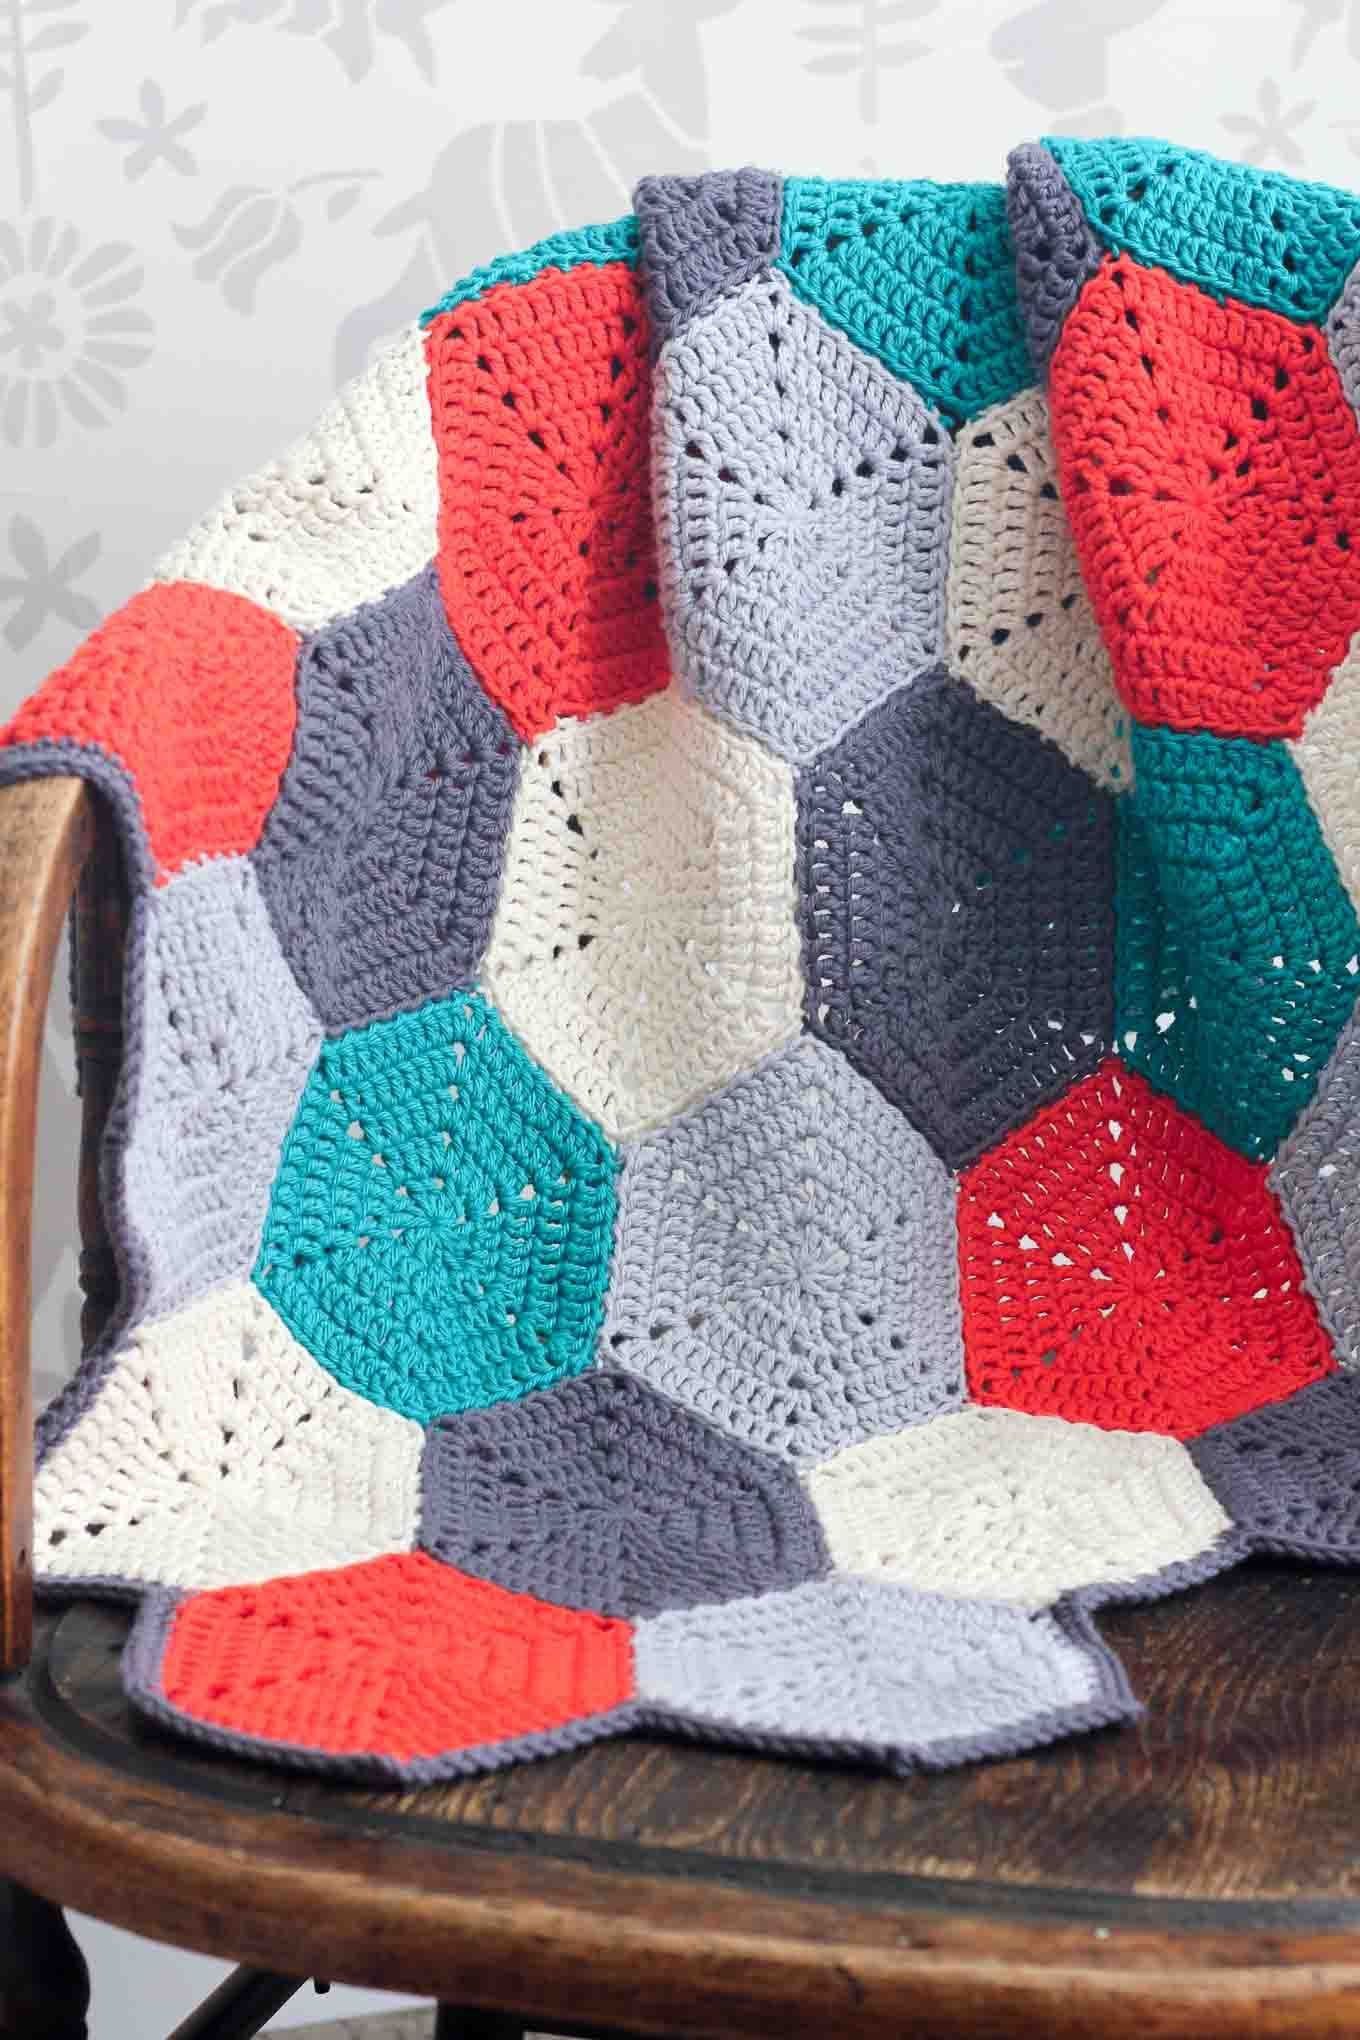 27 Crochet Projects That Are Going To Make You Want To Learn How To ...